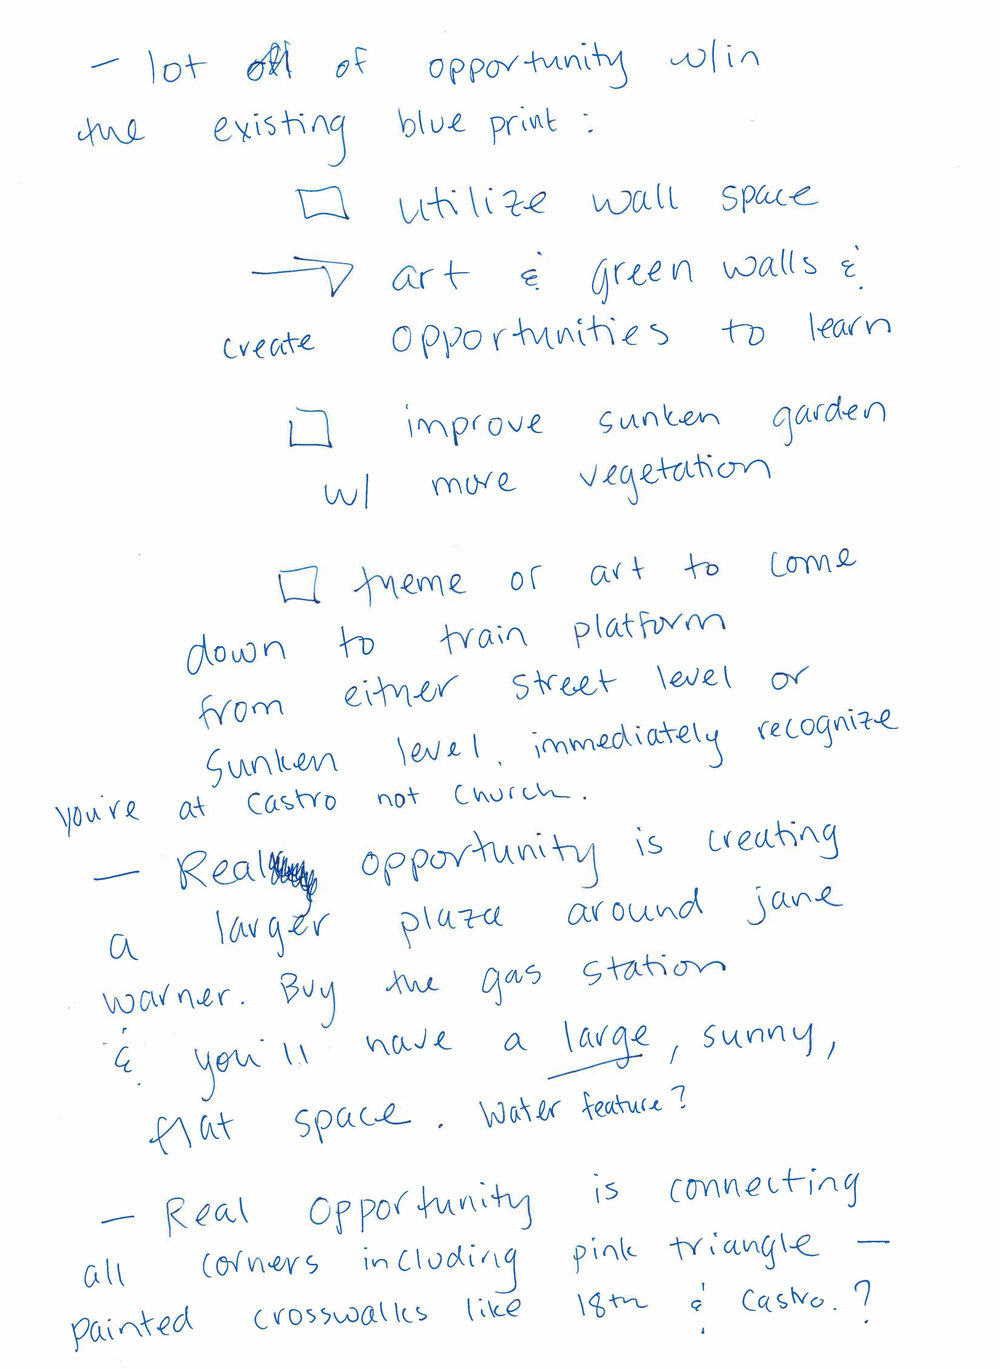 table notes transcribed  - Table #7 REVERSE side:1. Lots of opportunity within the existing blue print:a. Utilize wall space - art & green walls & create opportunities to learn.b. Improve the sunken garden with more vegetation.c. Theme or art to come down to train platform from either street level or sunken level - immediately recognize you're  at Castro (station) not Church (station).2. Real opportunity is creating a larger plaza around Jane Warner. Buy the gas station & you'll have a large, sunny, flat space. Water feature?3. Real opportunity is connecting all corners including Pink Triangle (Park) - painted crosswalks like 18th & Castro.